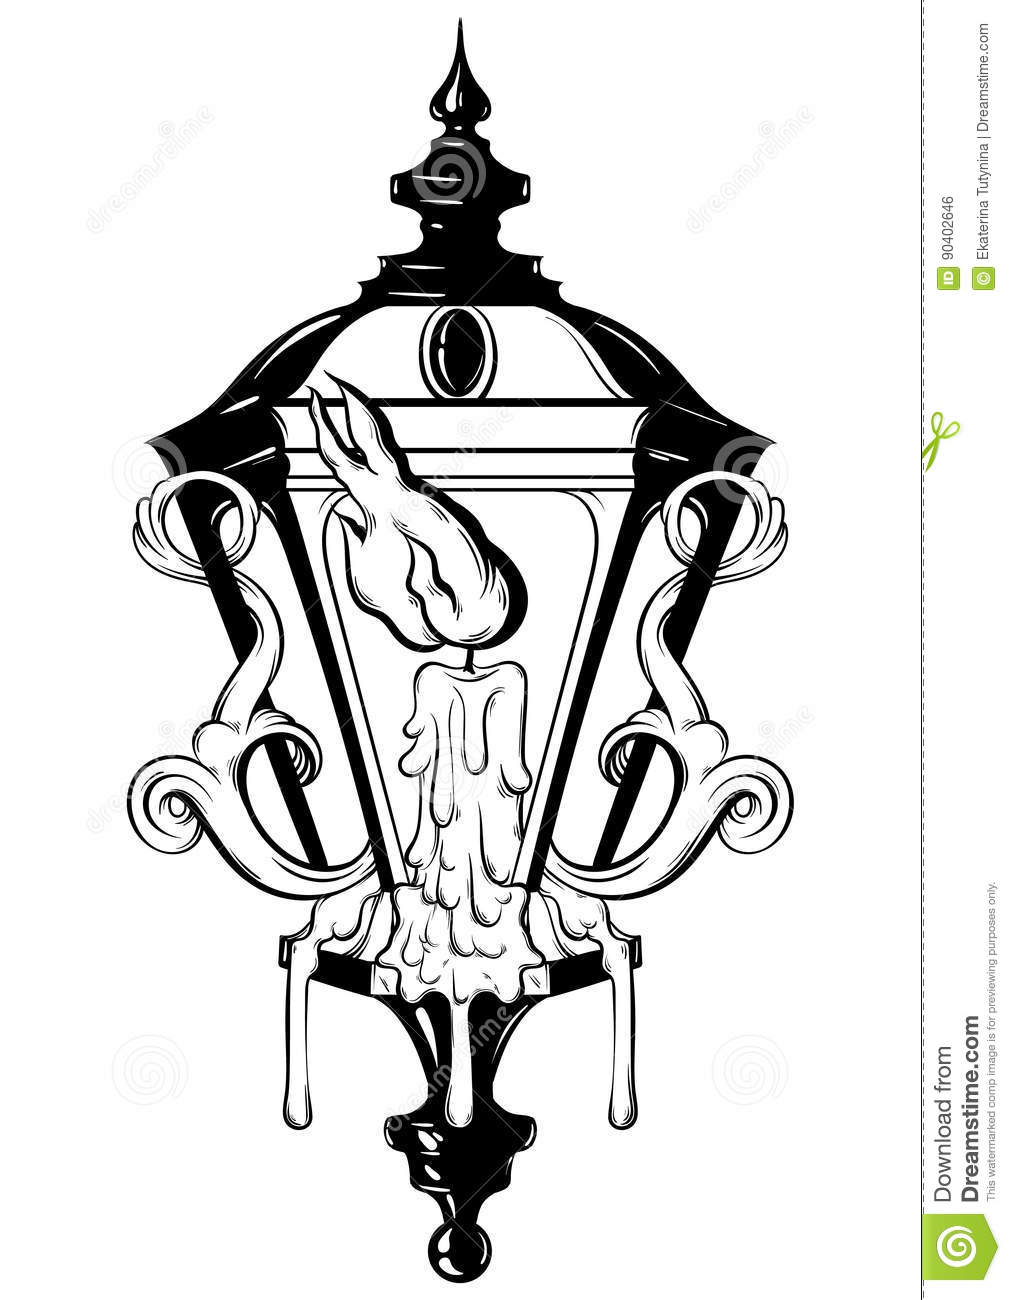 Vector Hand Drawn Illustration Of Lantern With Melting Candle And ...